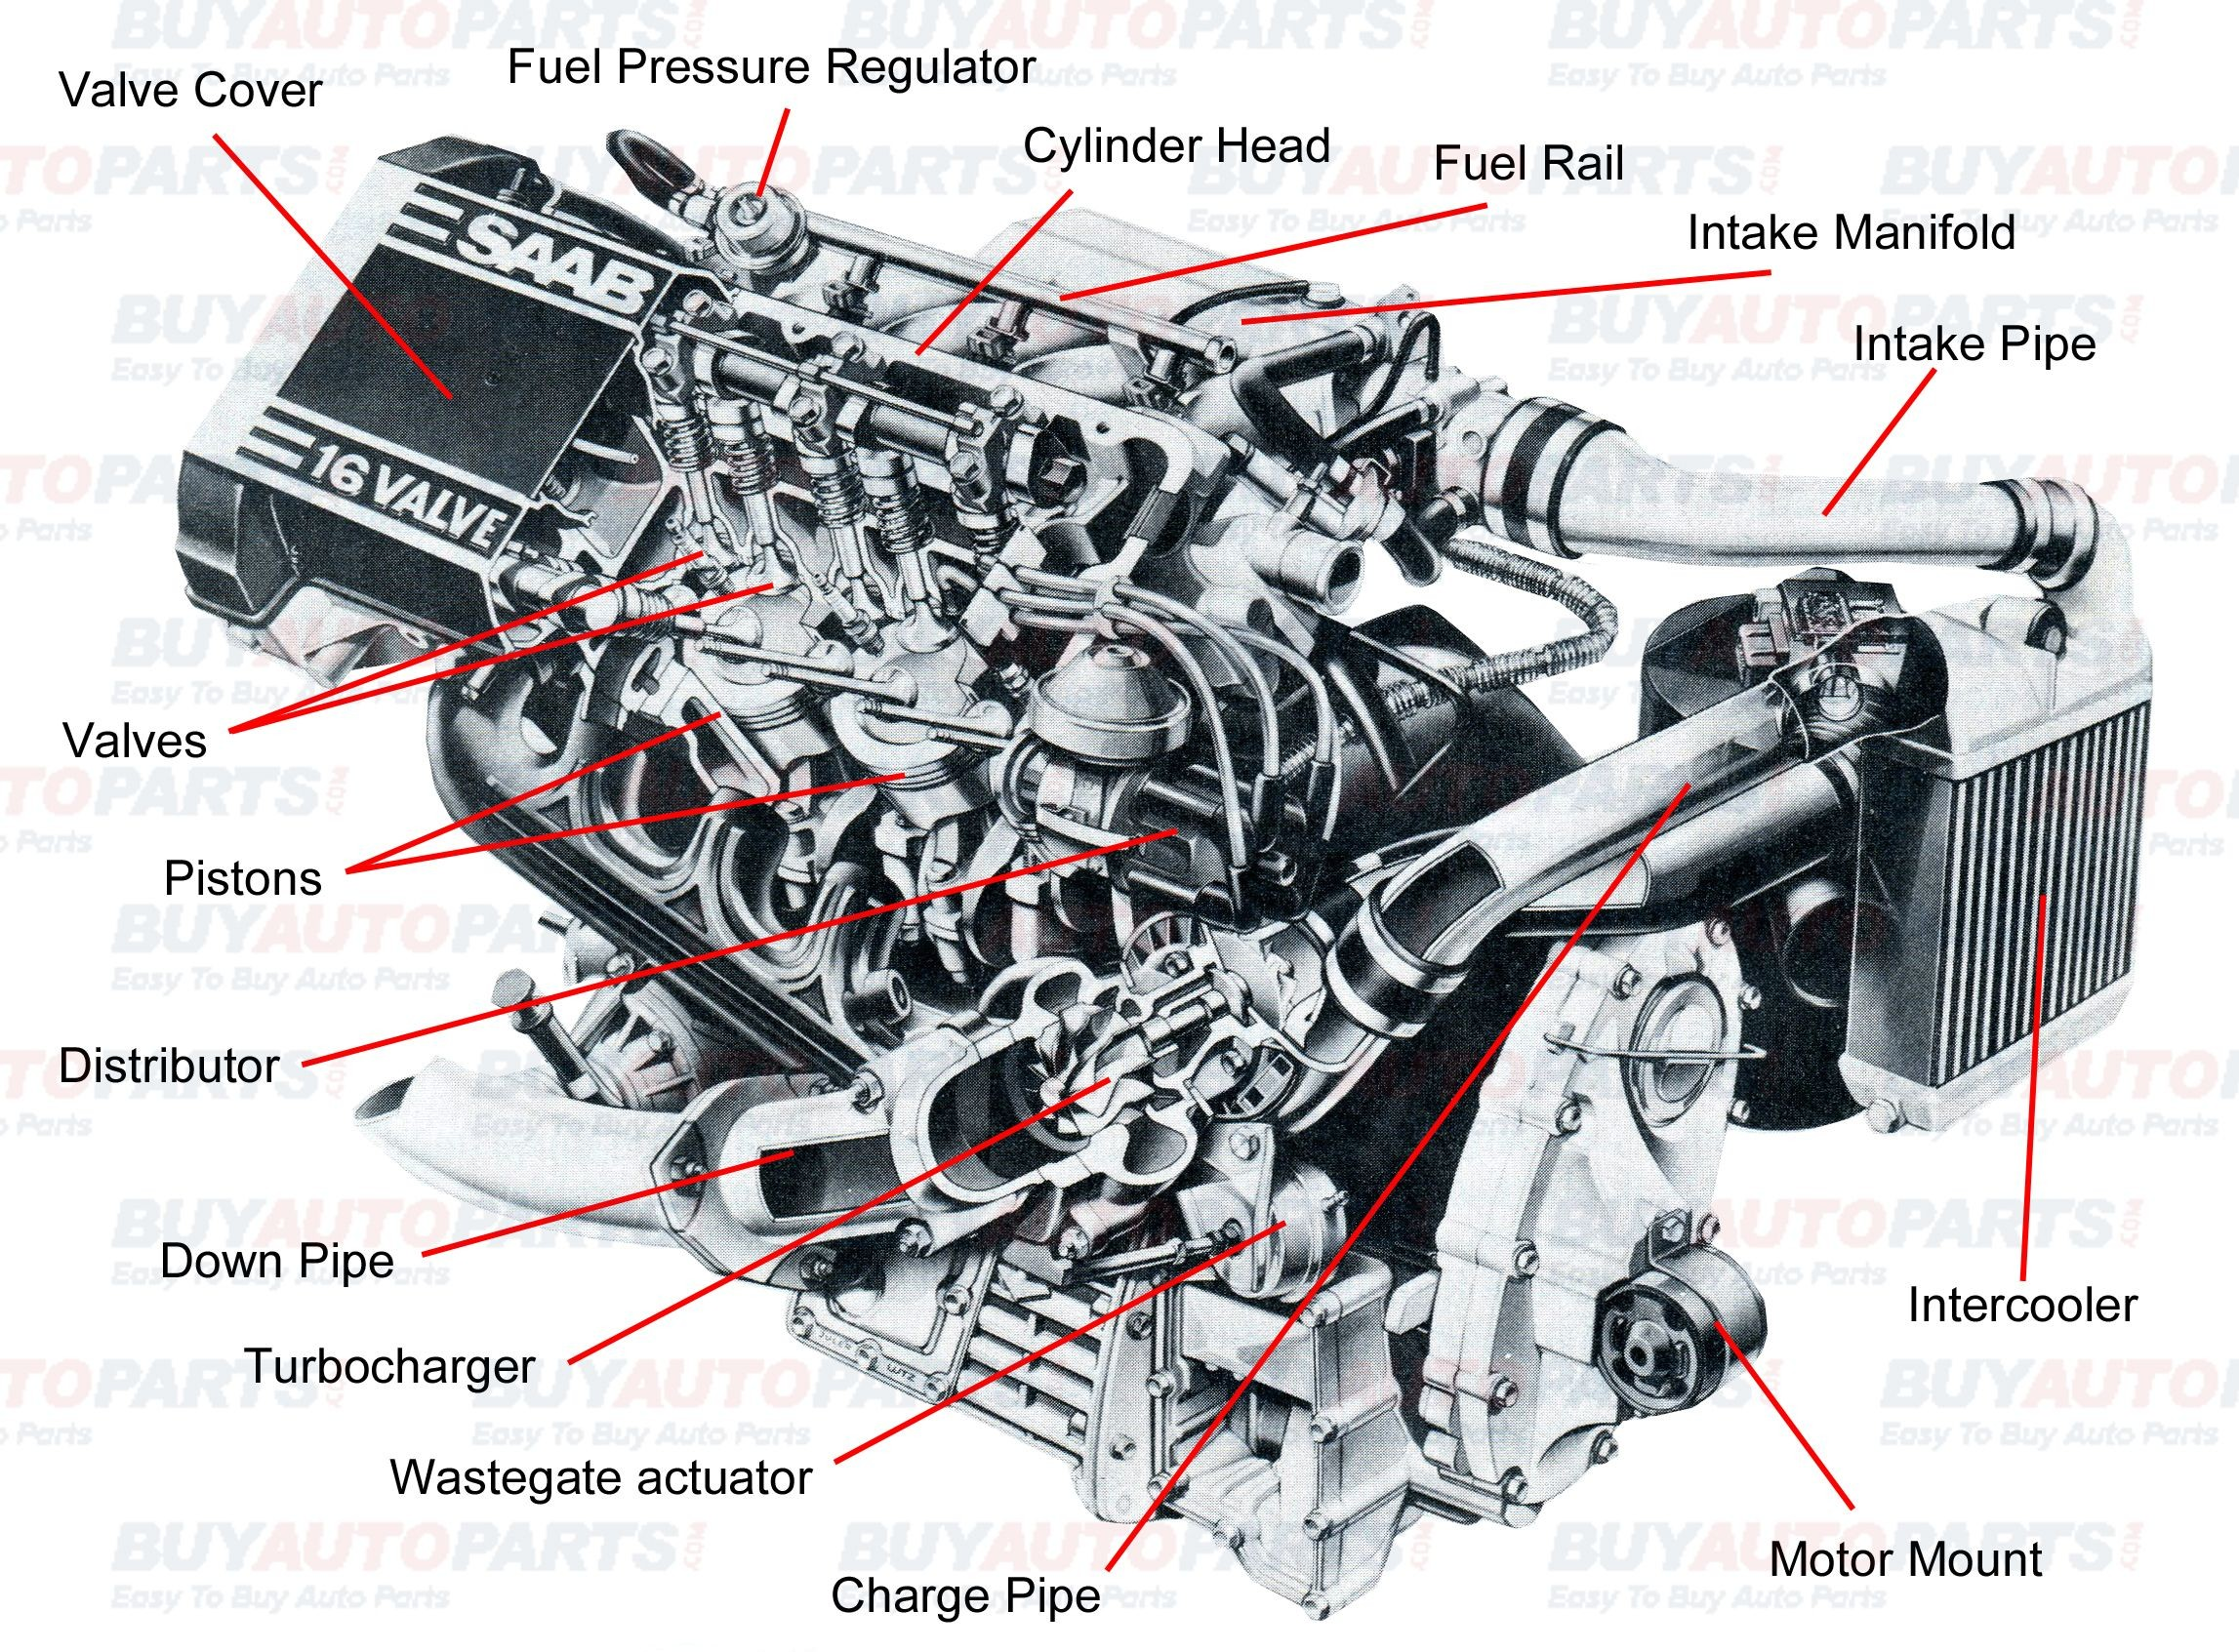 Diesel Engine Parts Diagram and Function All Internal Bustion Engines Have the Same Basic Ponents the Of Diesel Engine Parts Diagram and Function